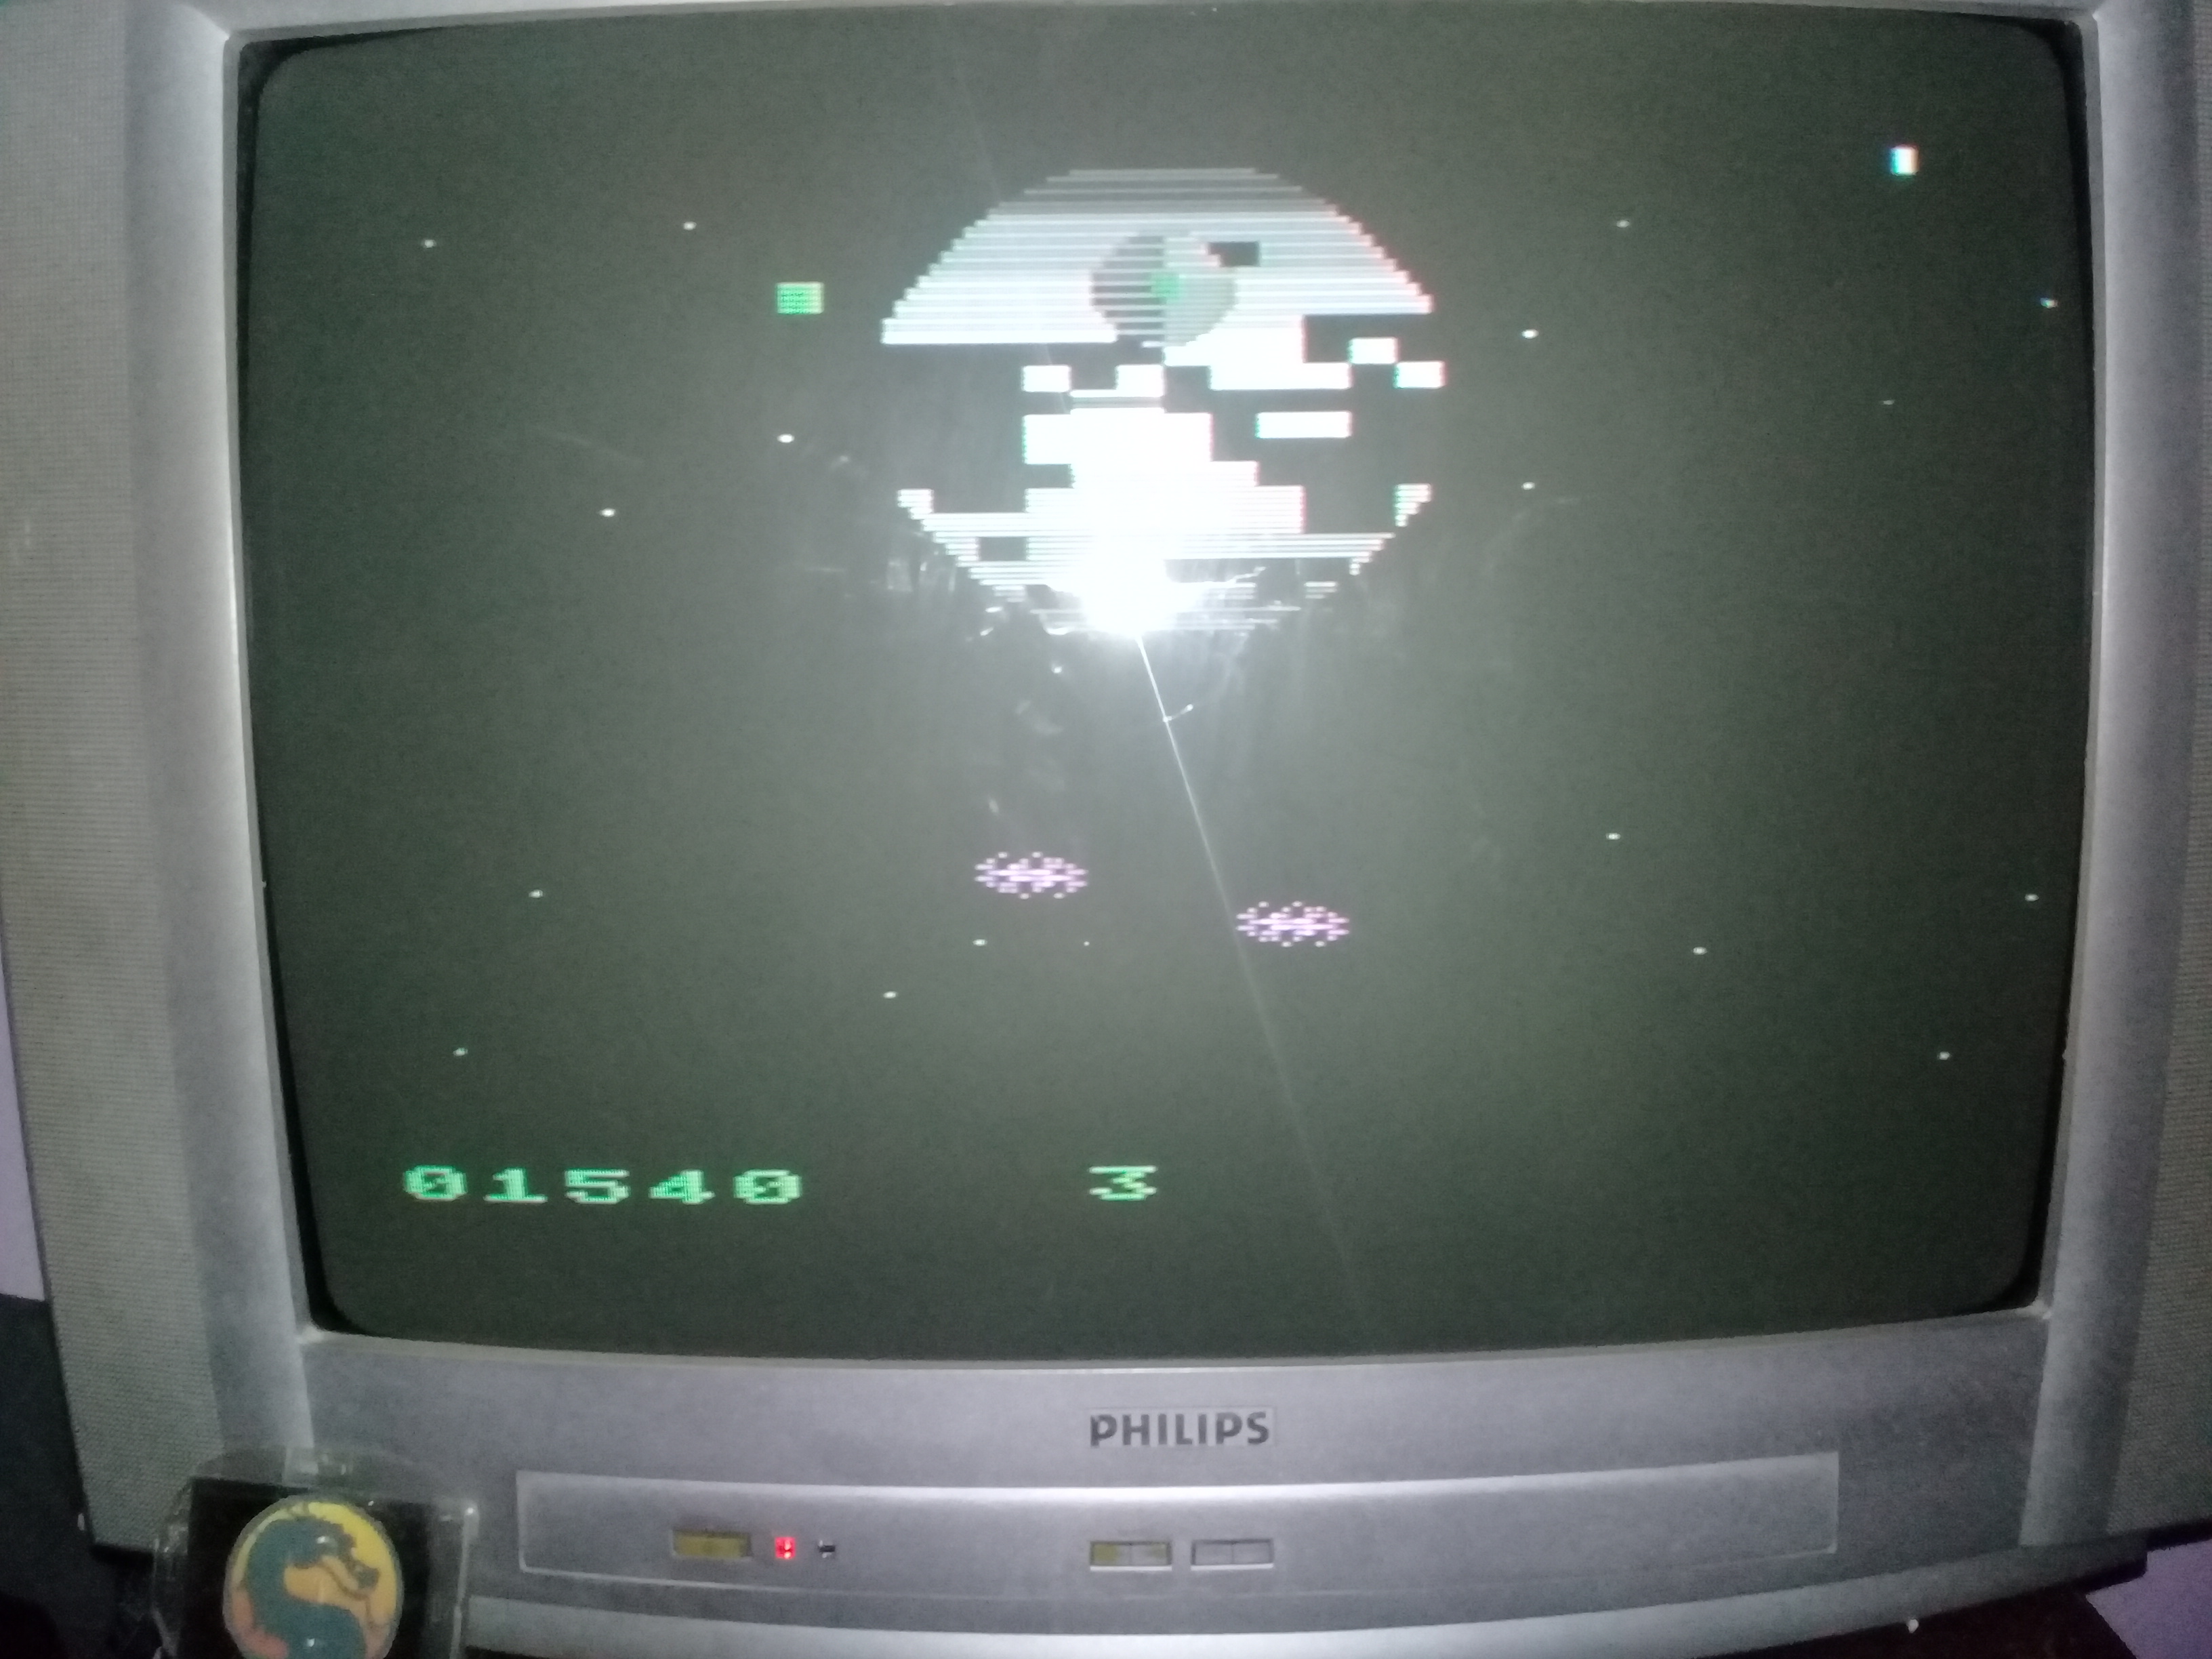 omargeddon: Star Wars - Return of the Jedi - Death Star Battle [Parker Brothers] [Game 3] (Atari 400/800/XL/XE) 1,540 points on 2020-03-13 19:33:50